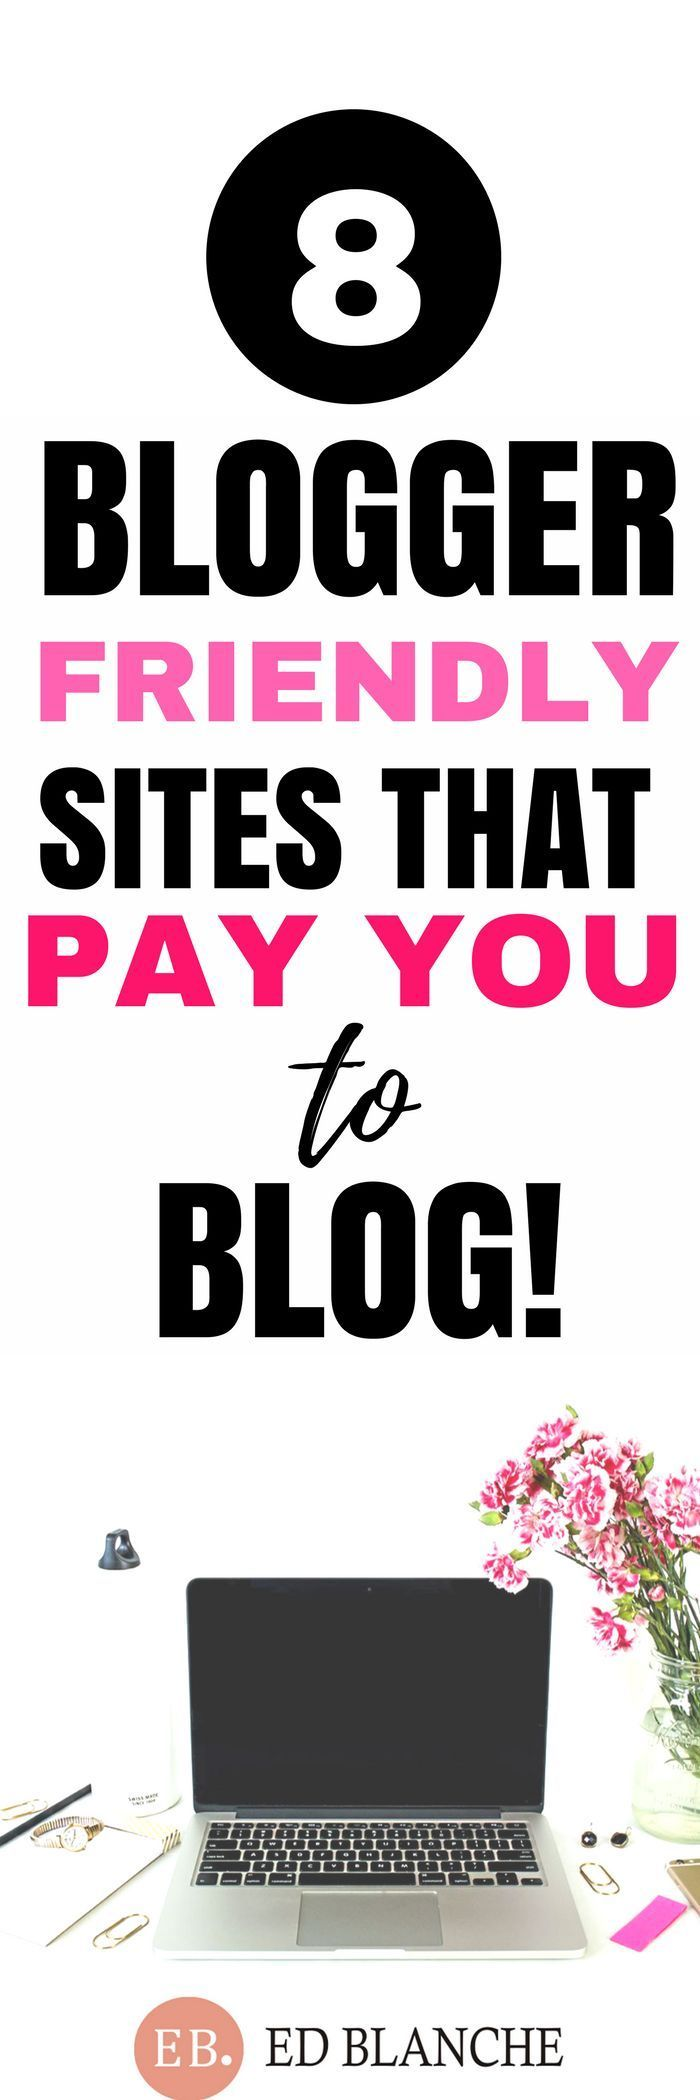 8 BLOGGER FRIENDLY SITES THAT PAY YOU TO BLOG #makemoneyblogging #bloggingformoney #blogging #bloggingforbeginners #bloggingfornewbies #makemoneyonline #workfromhome